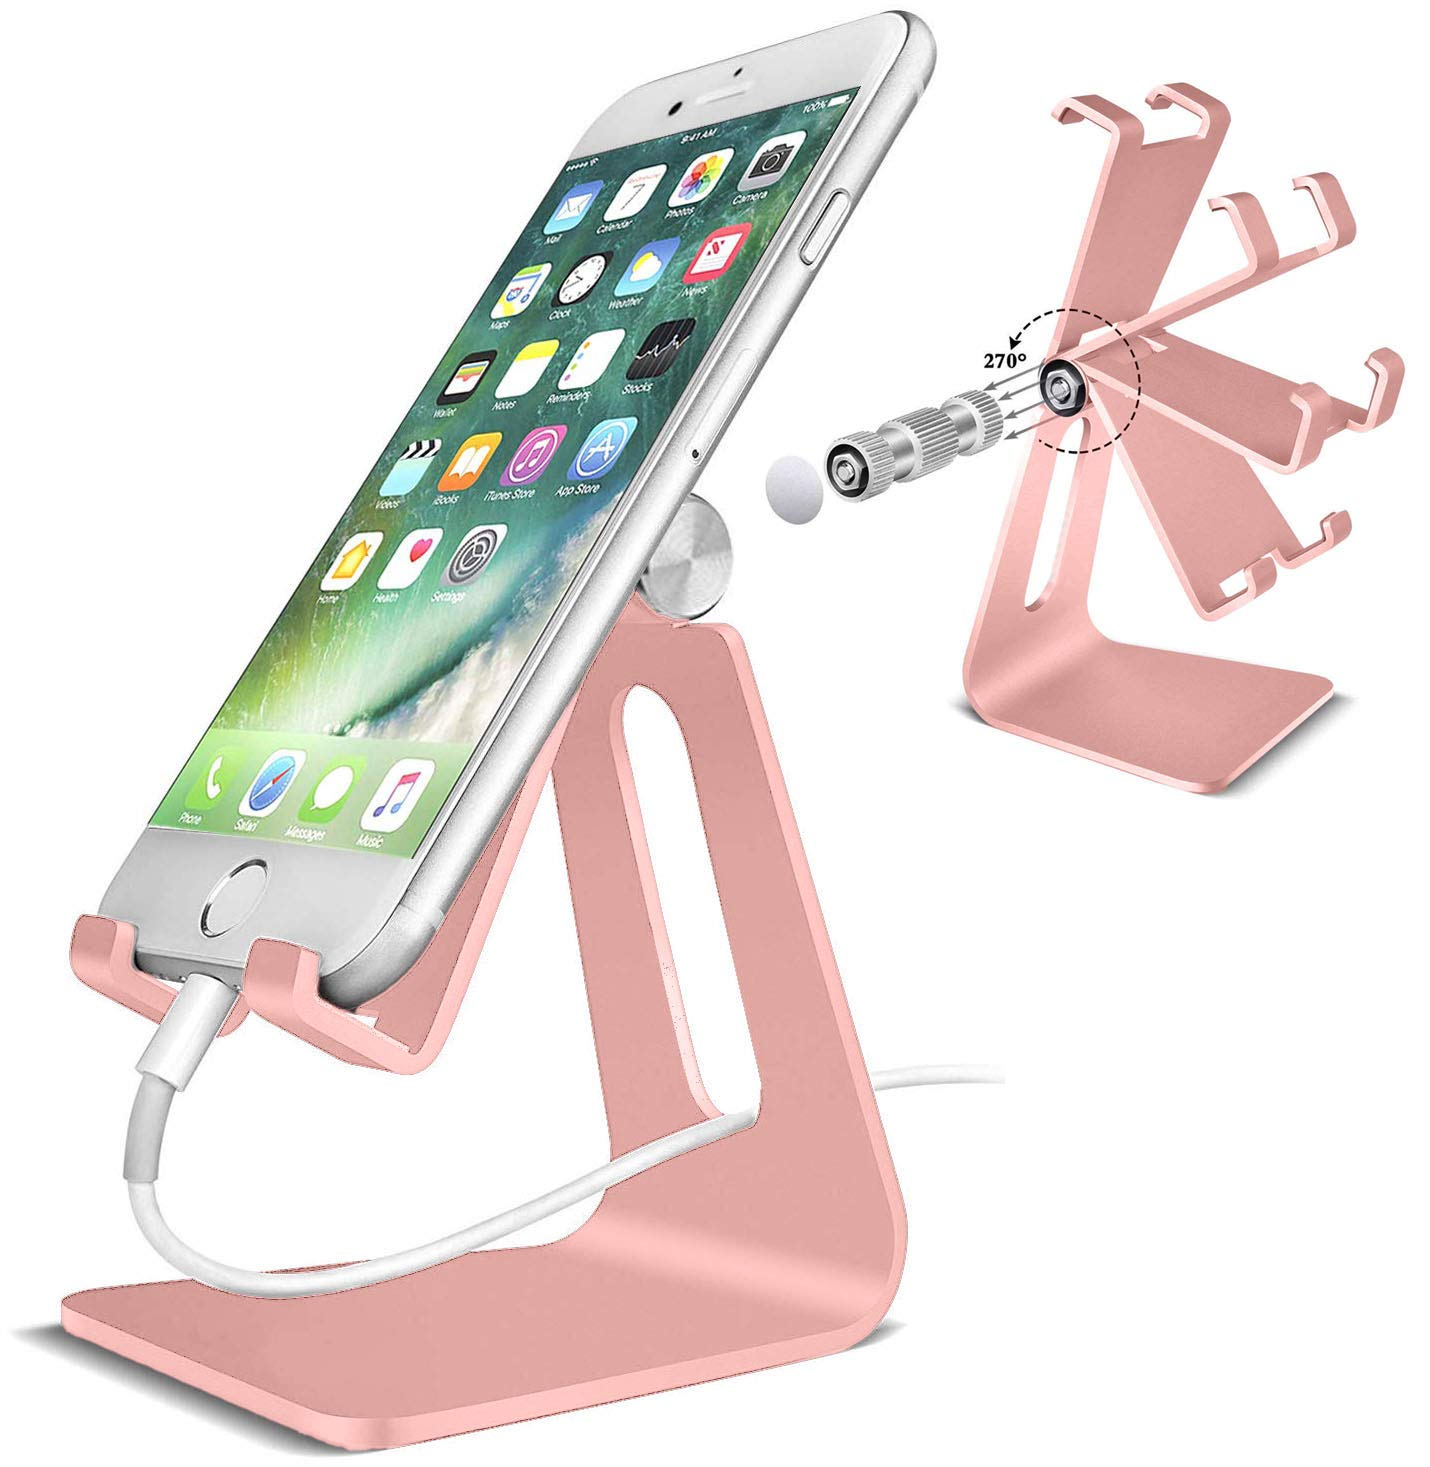 POKANIC Cell Phone Stand Dock Holder Cradle Mount Organizer Charger StationTable, Desktop Bed Office School Kitchen Travel Foldable Portable Adjustable, Multi-Angle Aluminum Non-Slip, Kids (Rose Gold)